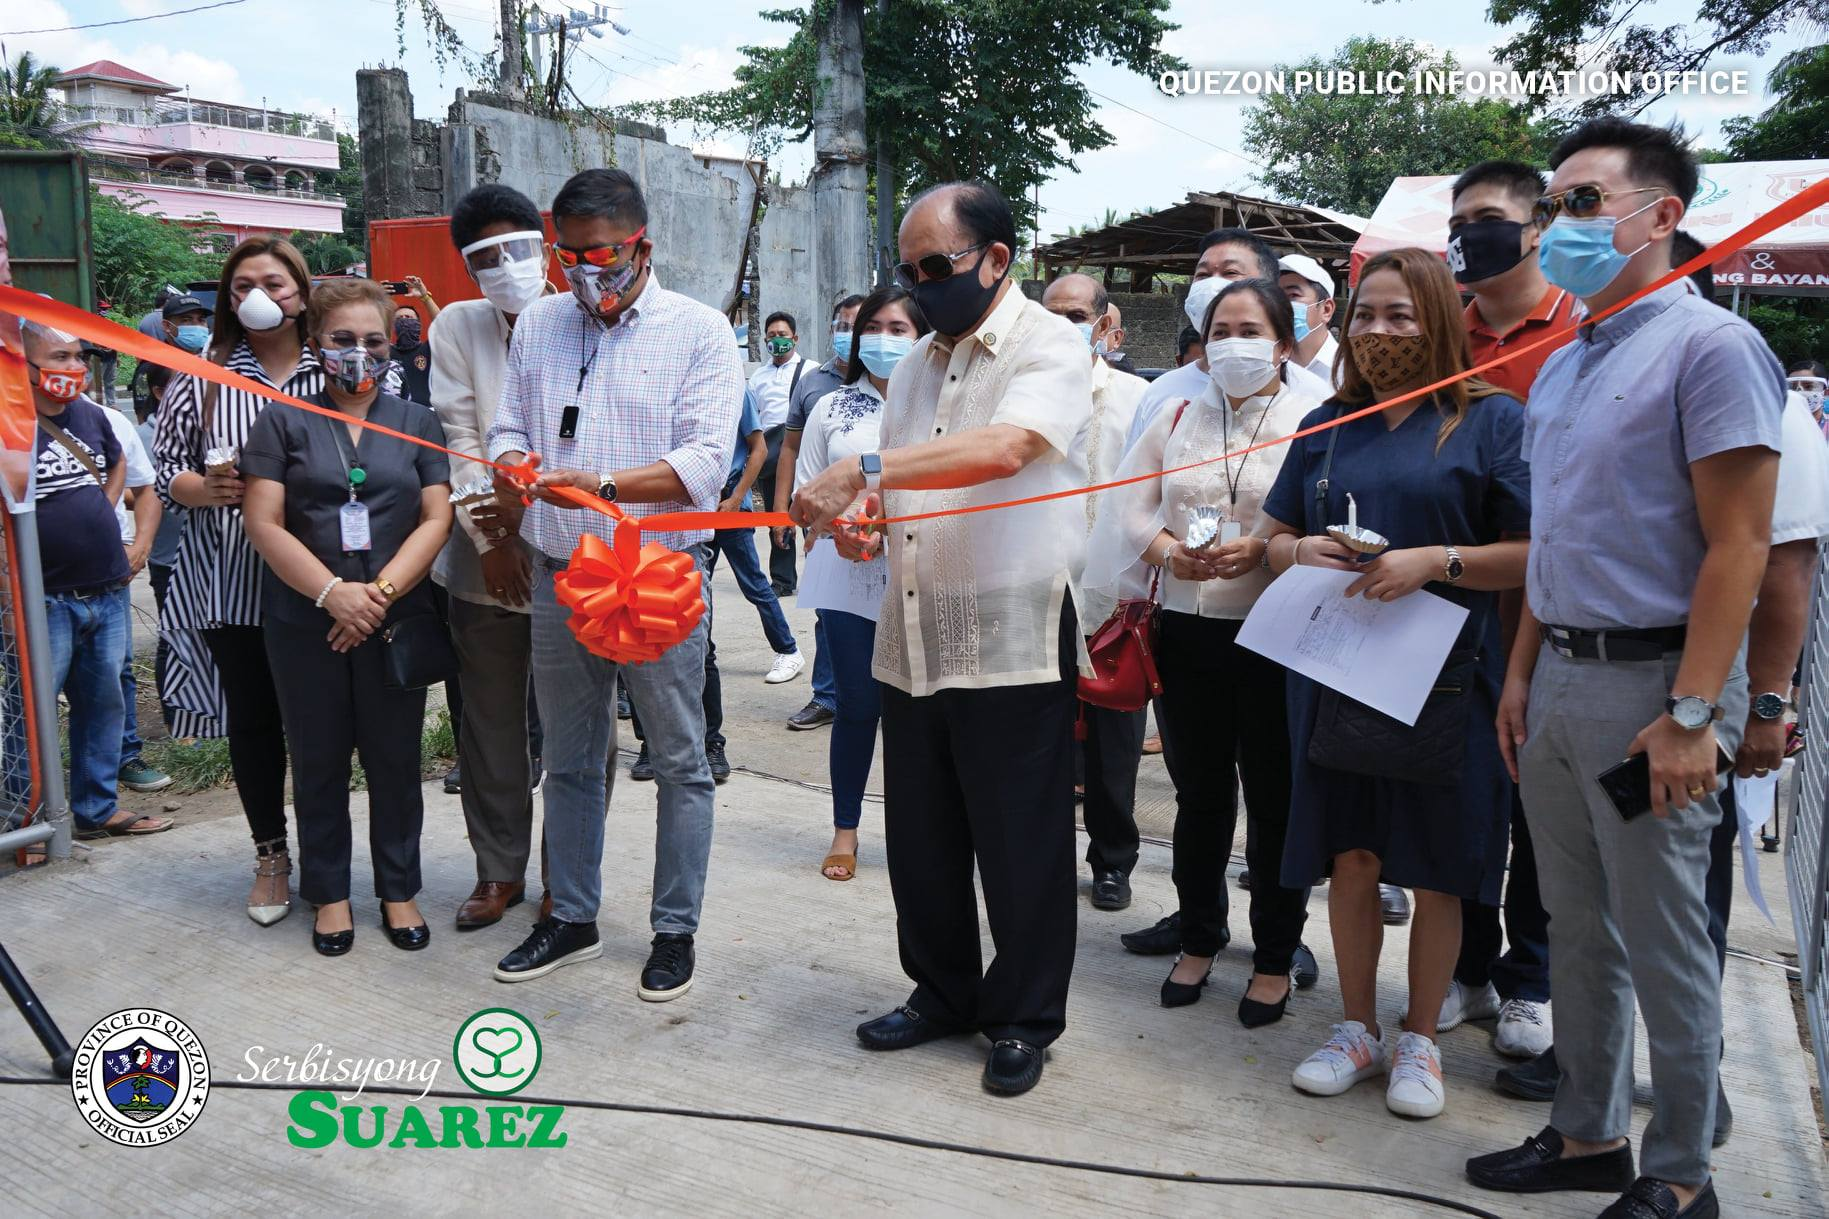 Ceremonial Opening of the Candelaria, Quezon Ligtas Covid Center (Isolation Facility of Candelaria, Quezon)